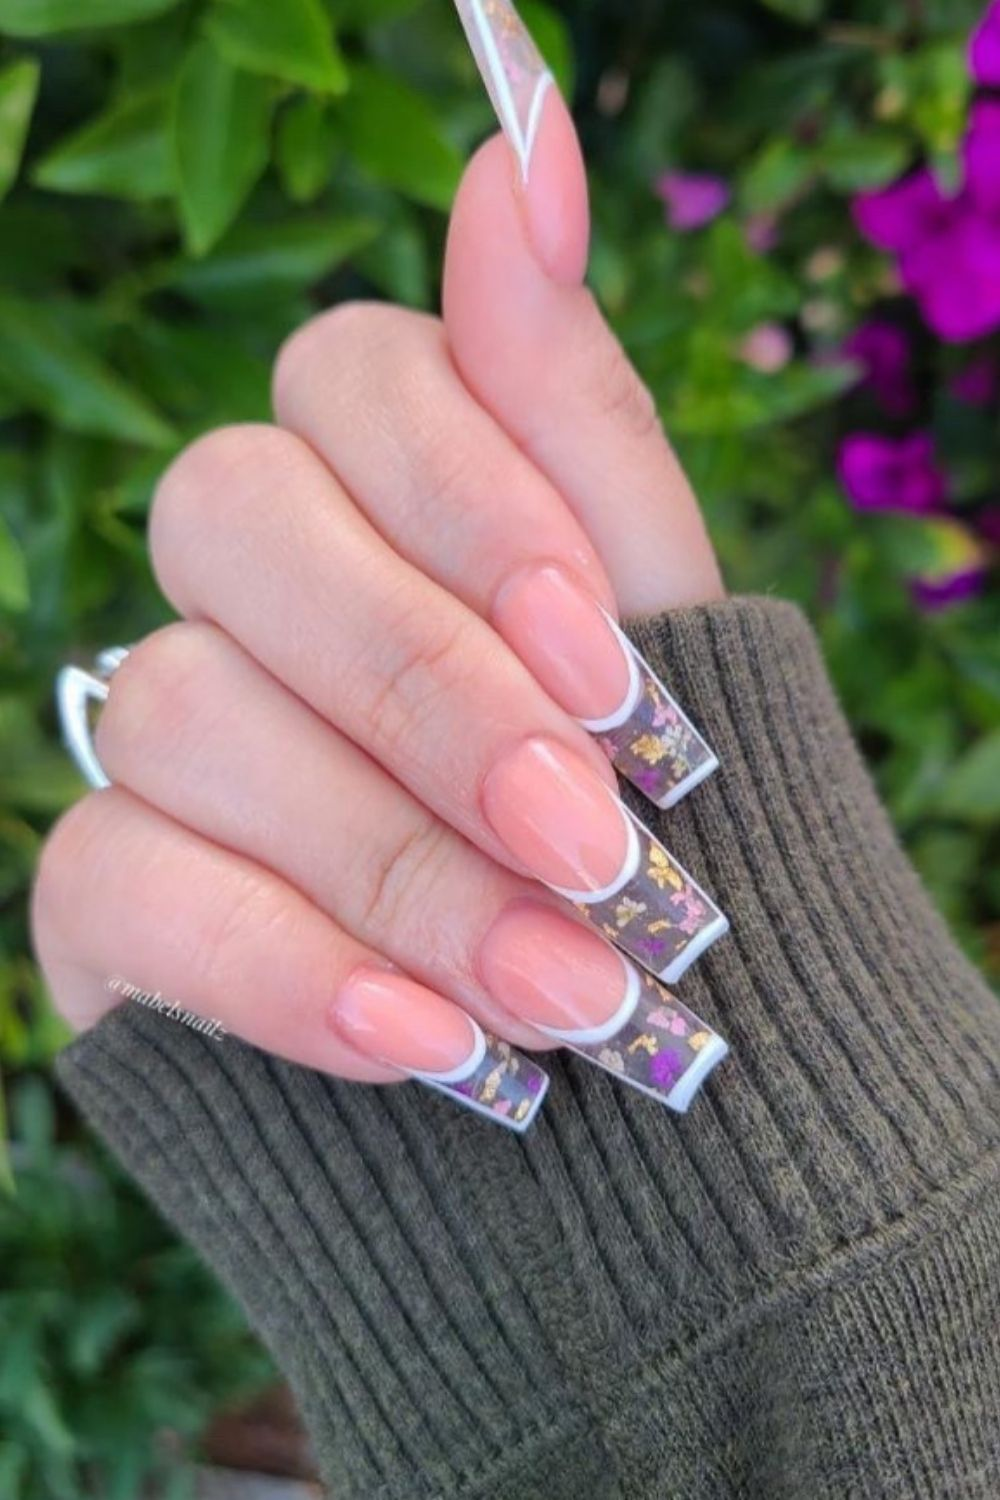 Birthday nails can make you like a queen at your birthday party